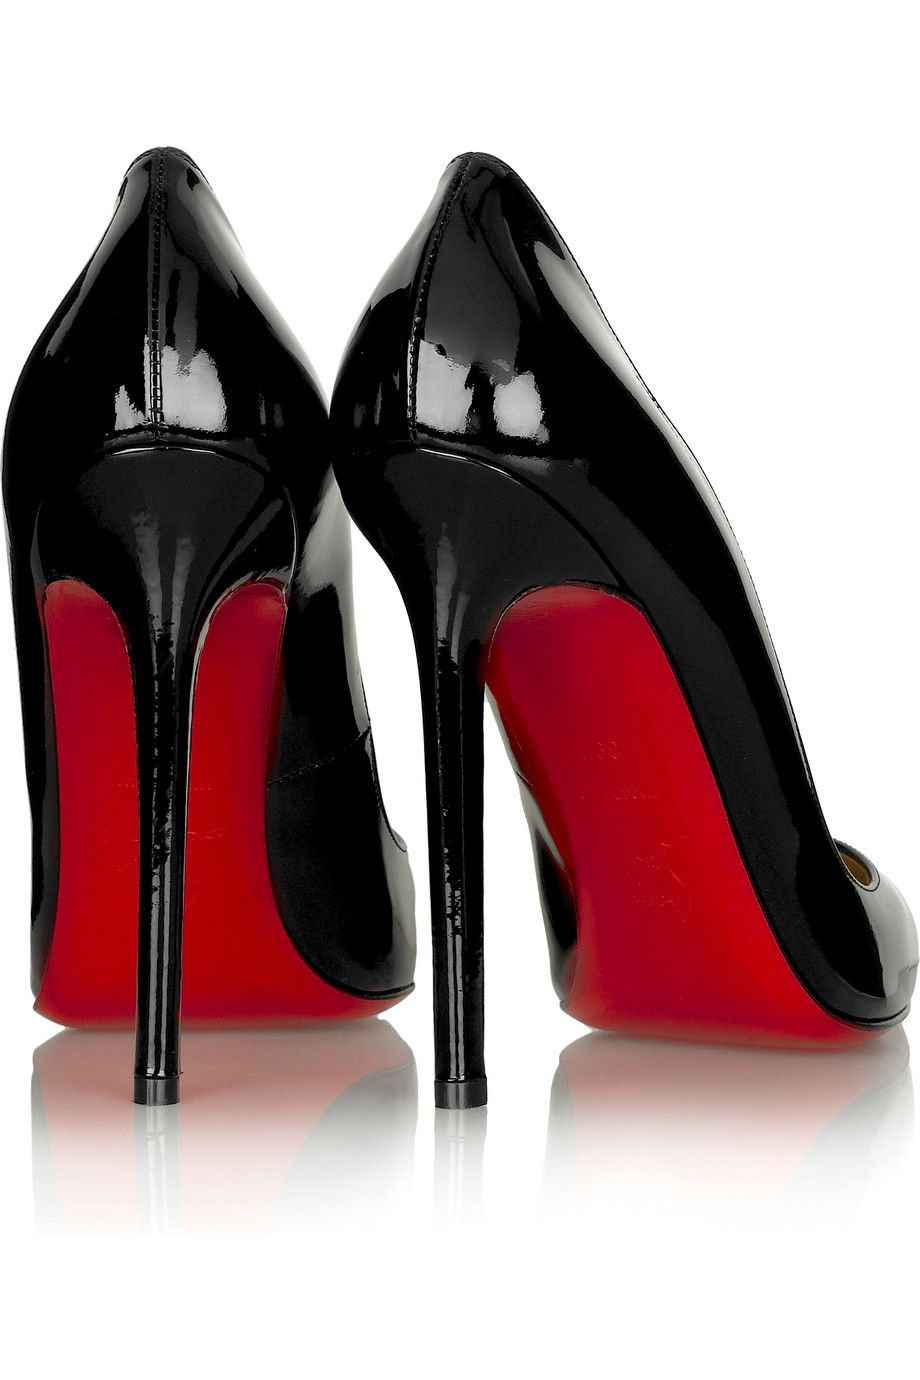 2ea4209bef Black patent-leather pumps with a heel that measures approximately / 5  inches. Christian Louboutin shoes have a pointed low-cut toe and signature  red ...